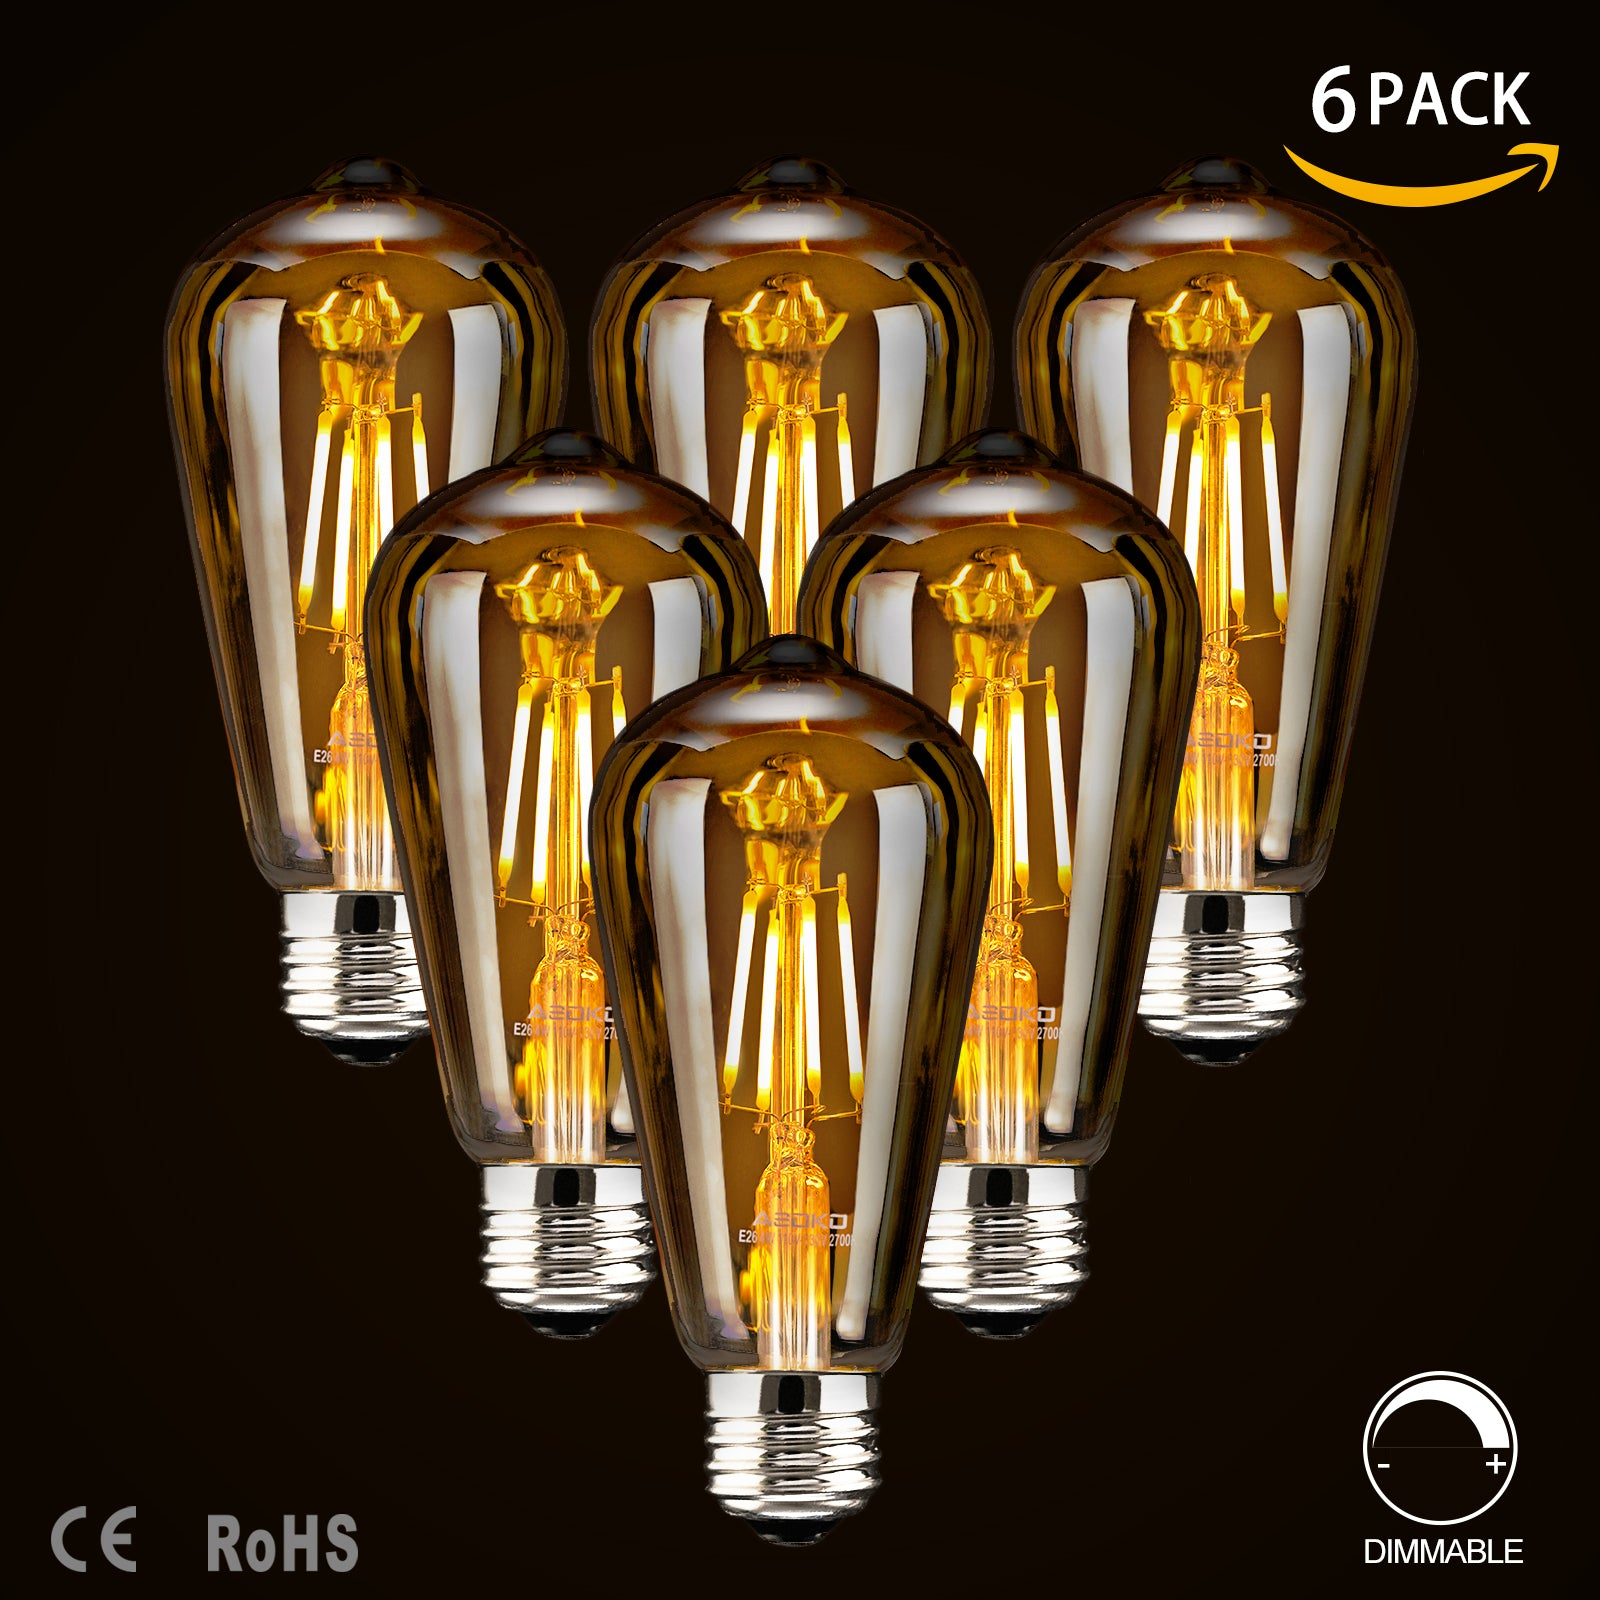 LED Dimmable Edison Light Bulbs 4W Vintage Light Bulb, 2300K Warm White (Amber Glass), Antique Style LED Edison Bulbs, Squarrel Cage Filament,ST64, E26 Base (4W- 6 Pack)